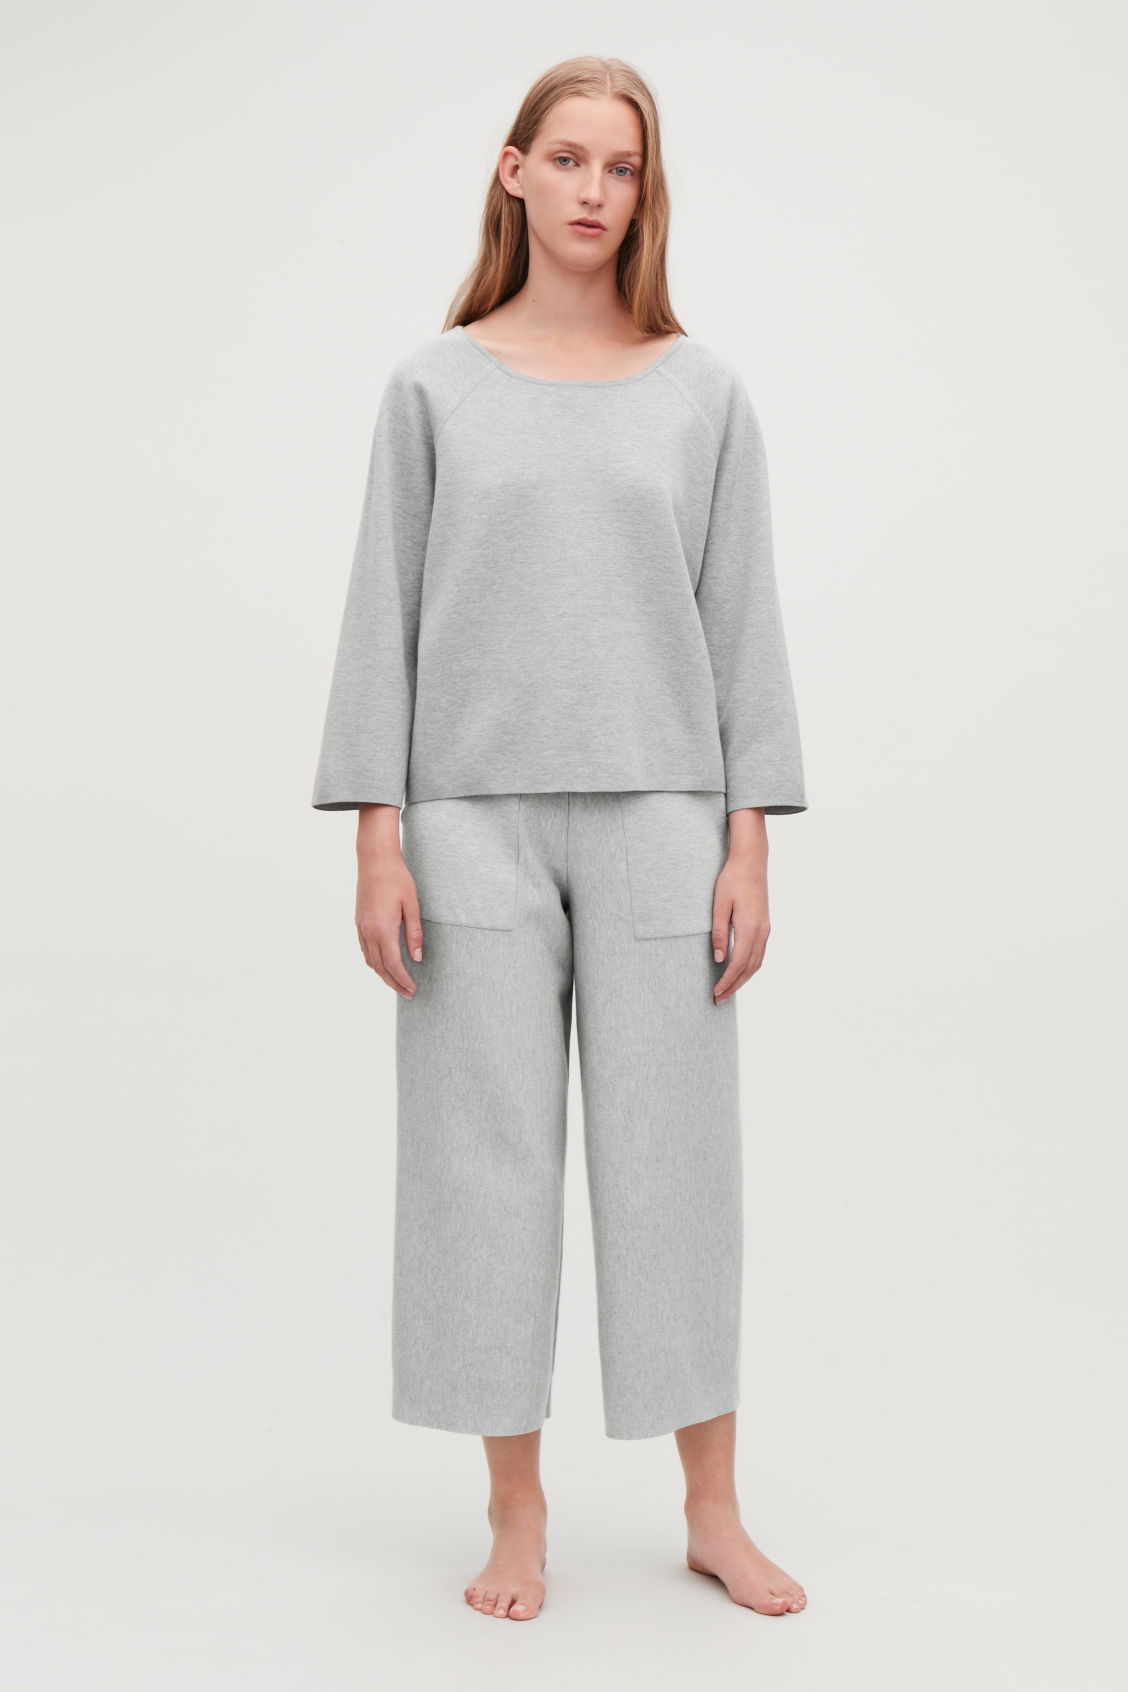 Detailed image of Cos cotton-cashmere knit top in grey